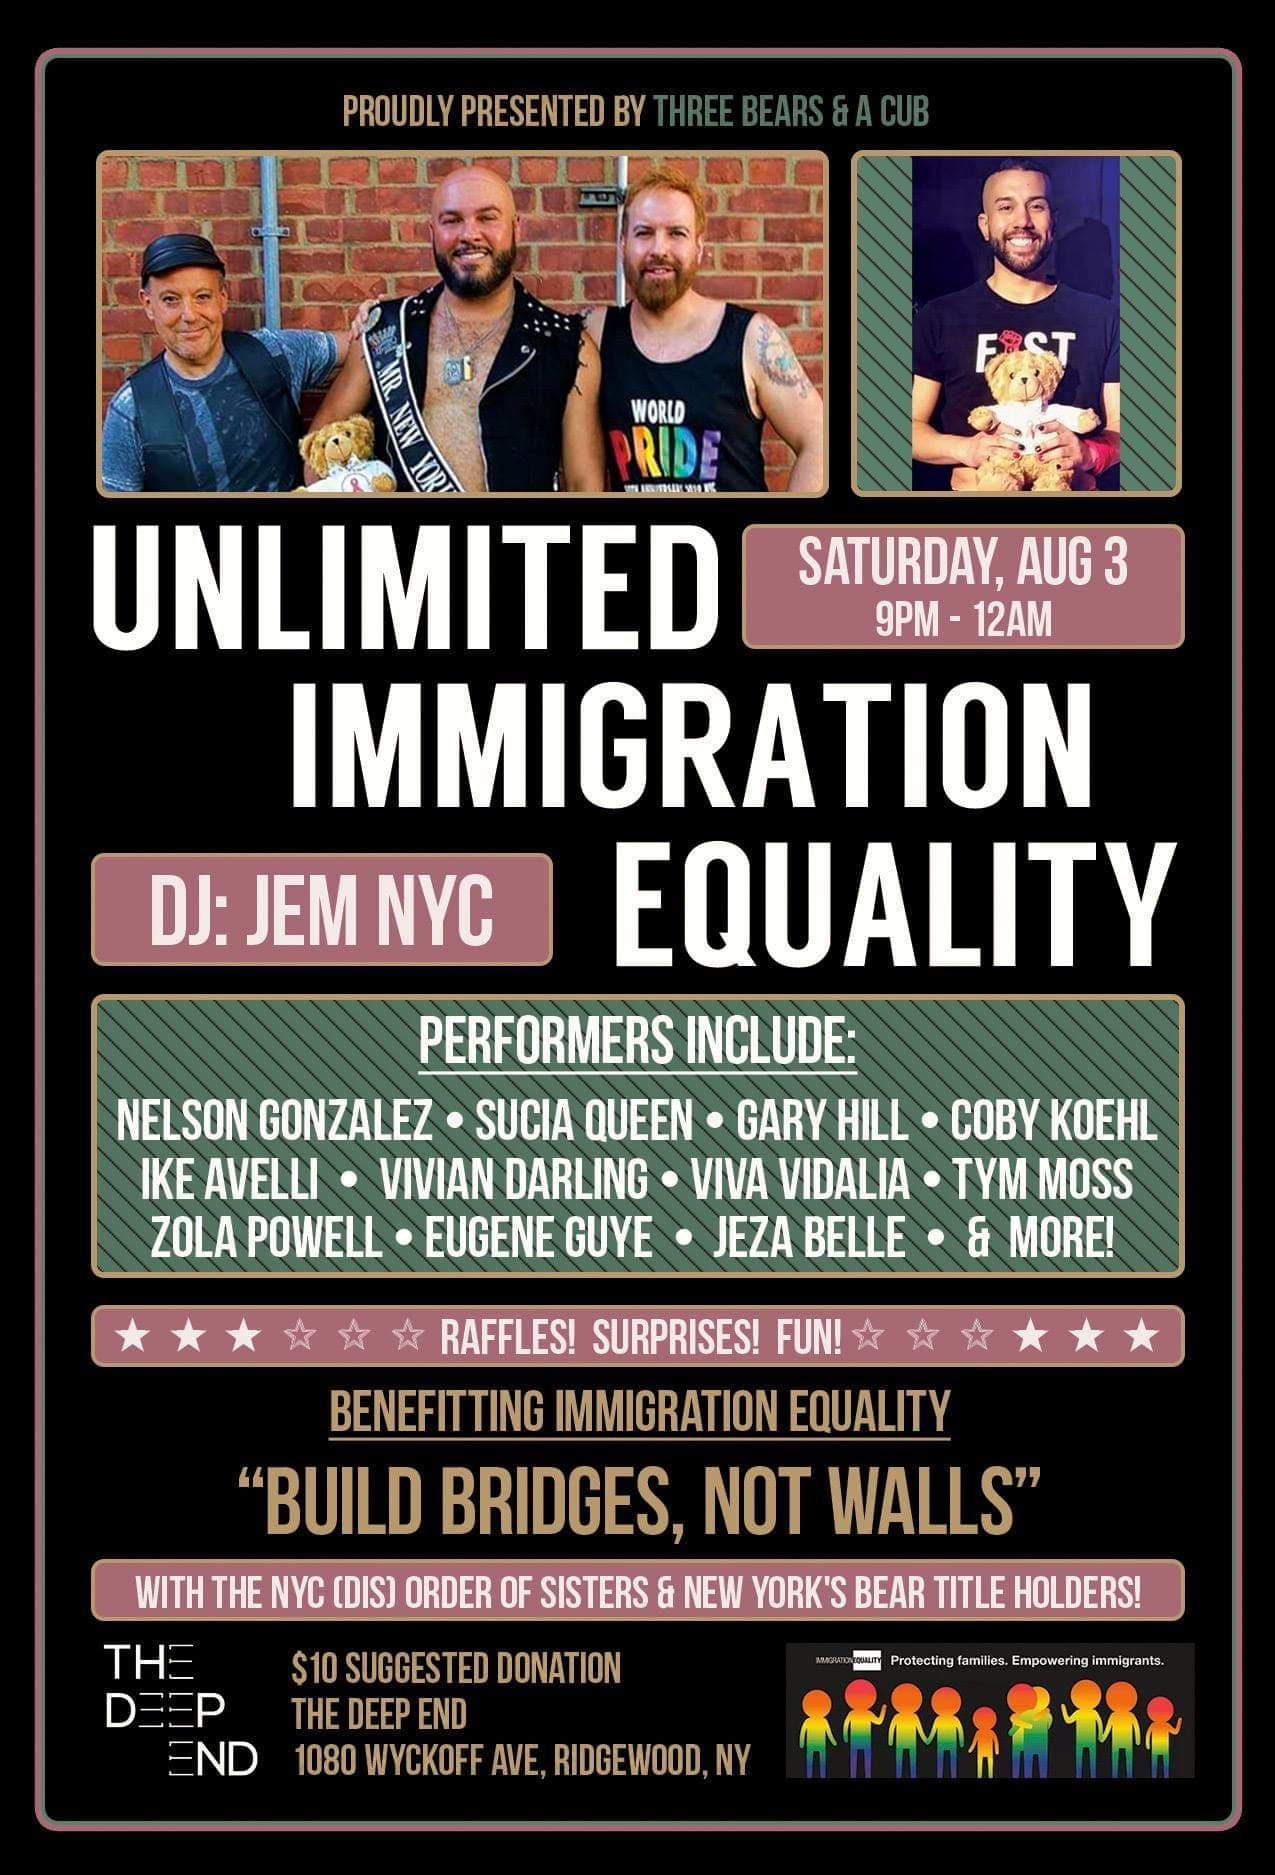 Three Bears & A Cub & Sobel Promotions Present 'Unlimited Immigration Equality': A Benefit For Immigration Equality